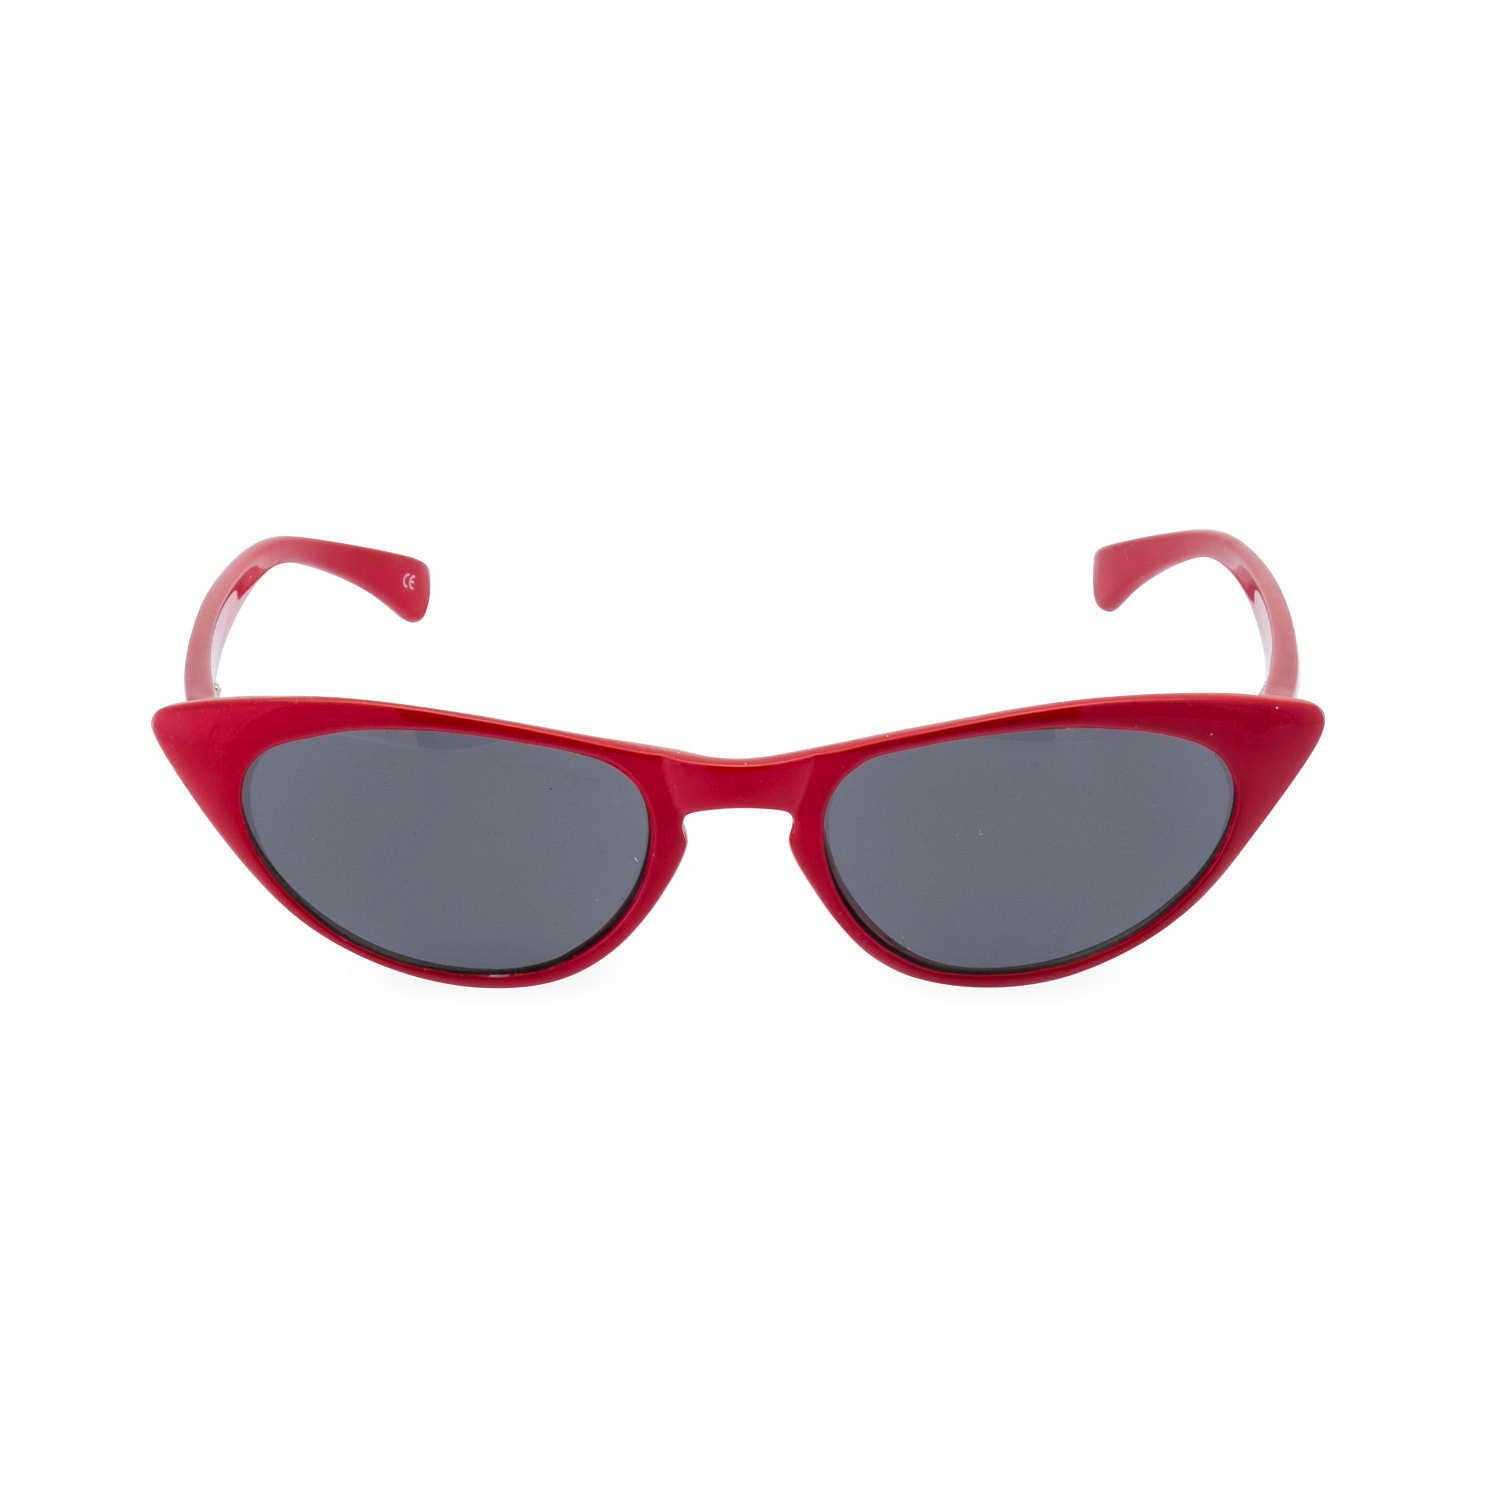 1950s 60s style CAT EYE sunglasses or sun readers NEW made to original vintage design Peggy Rockabilly Lipstick Red